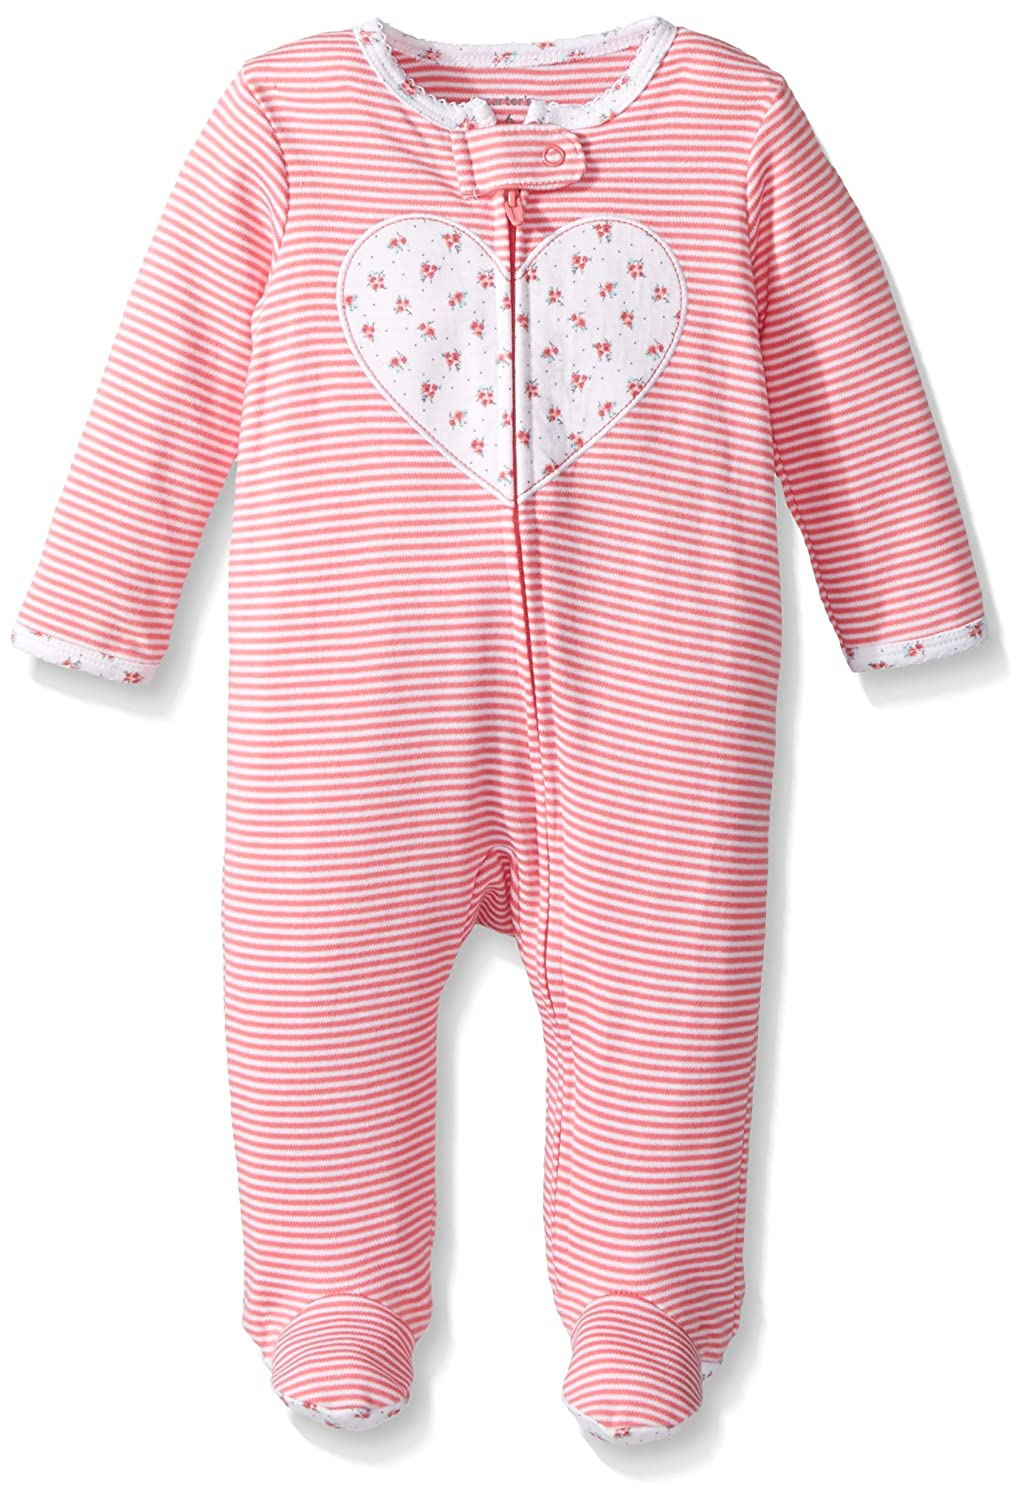 Carter's Baby Girls' Floral Heart Split Footed Coverall Carter' s